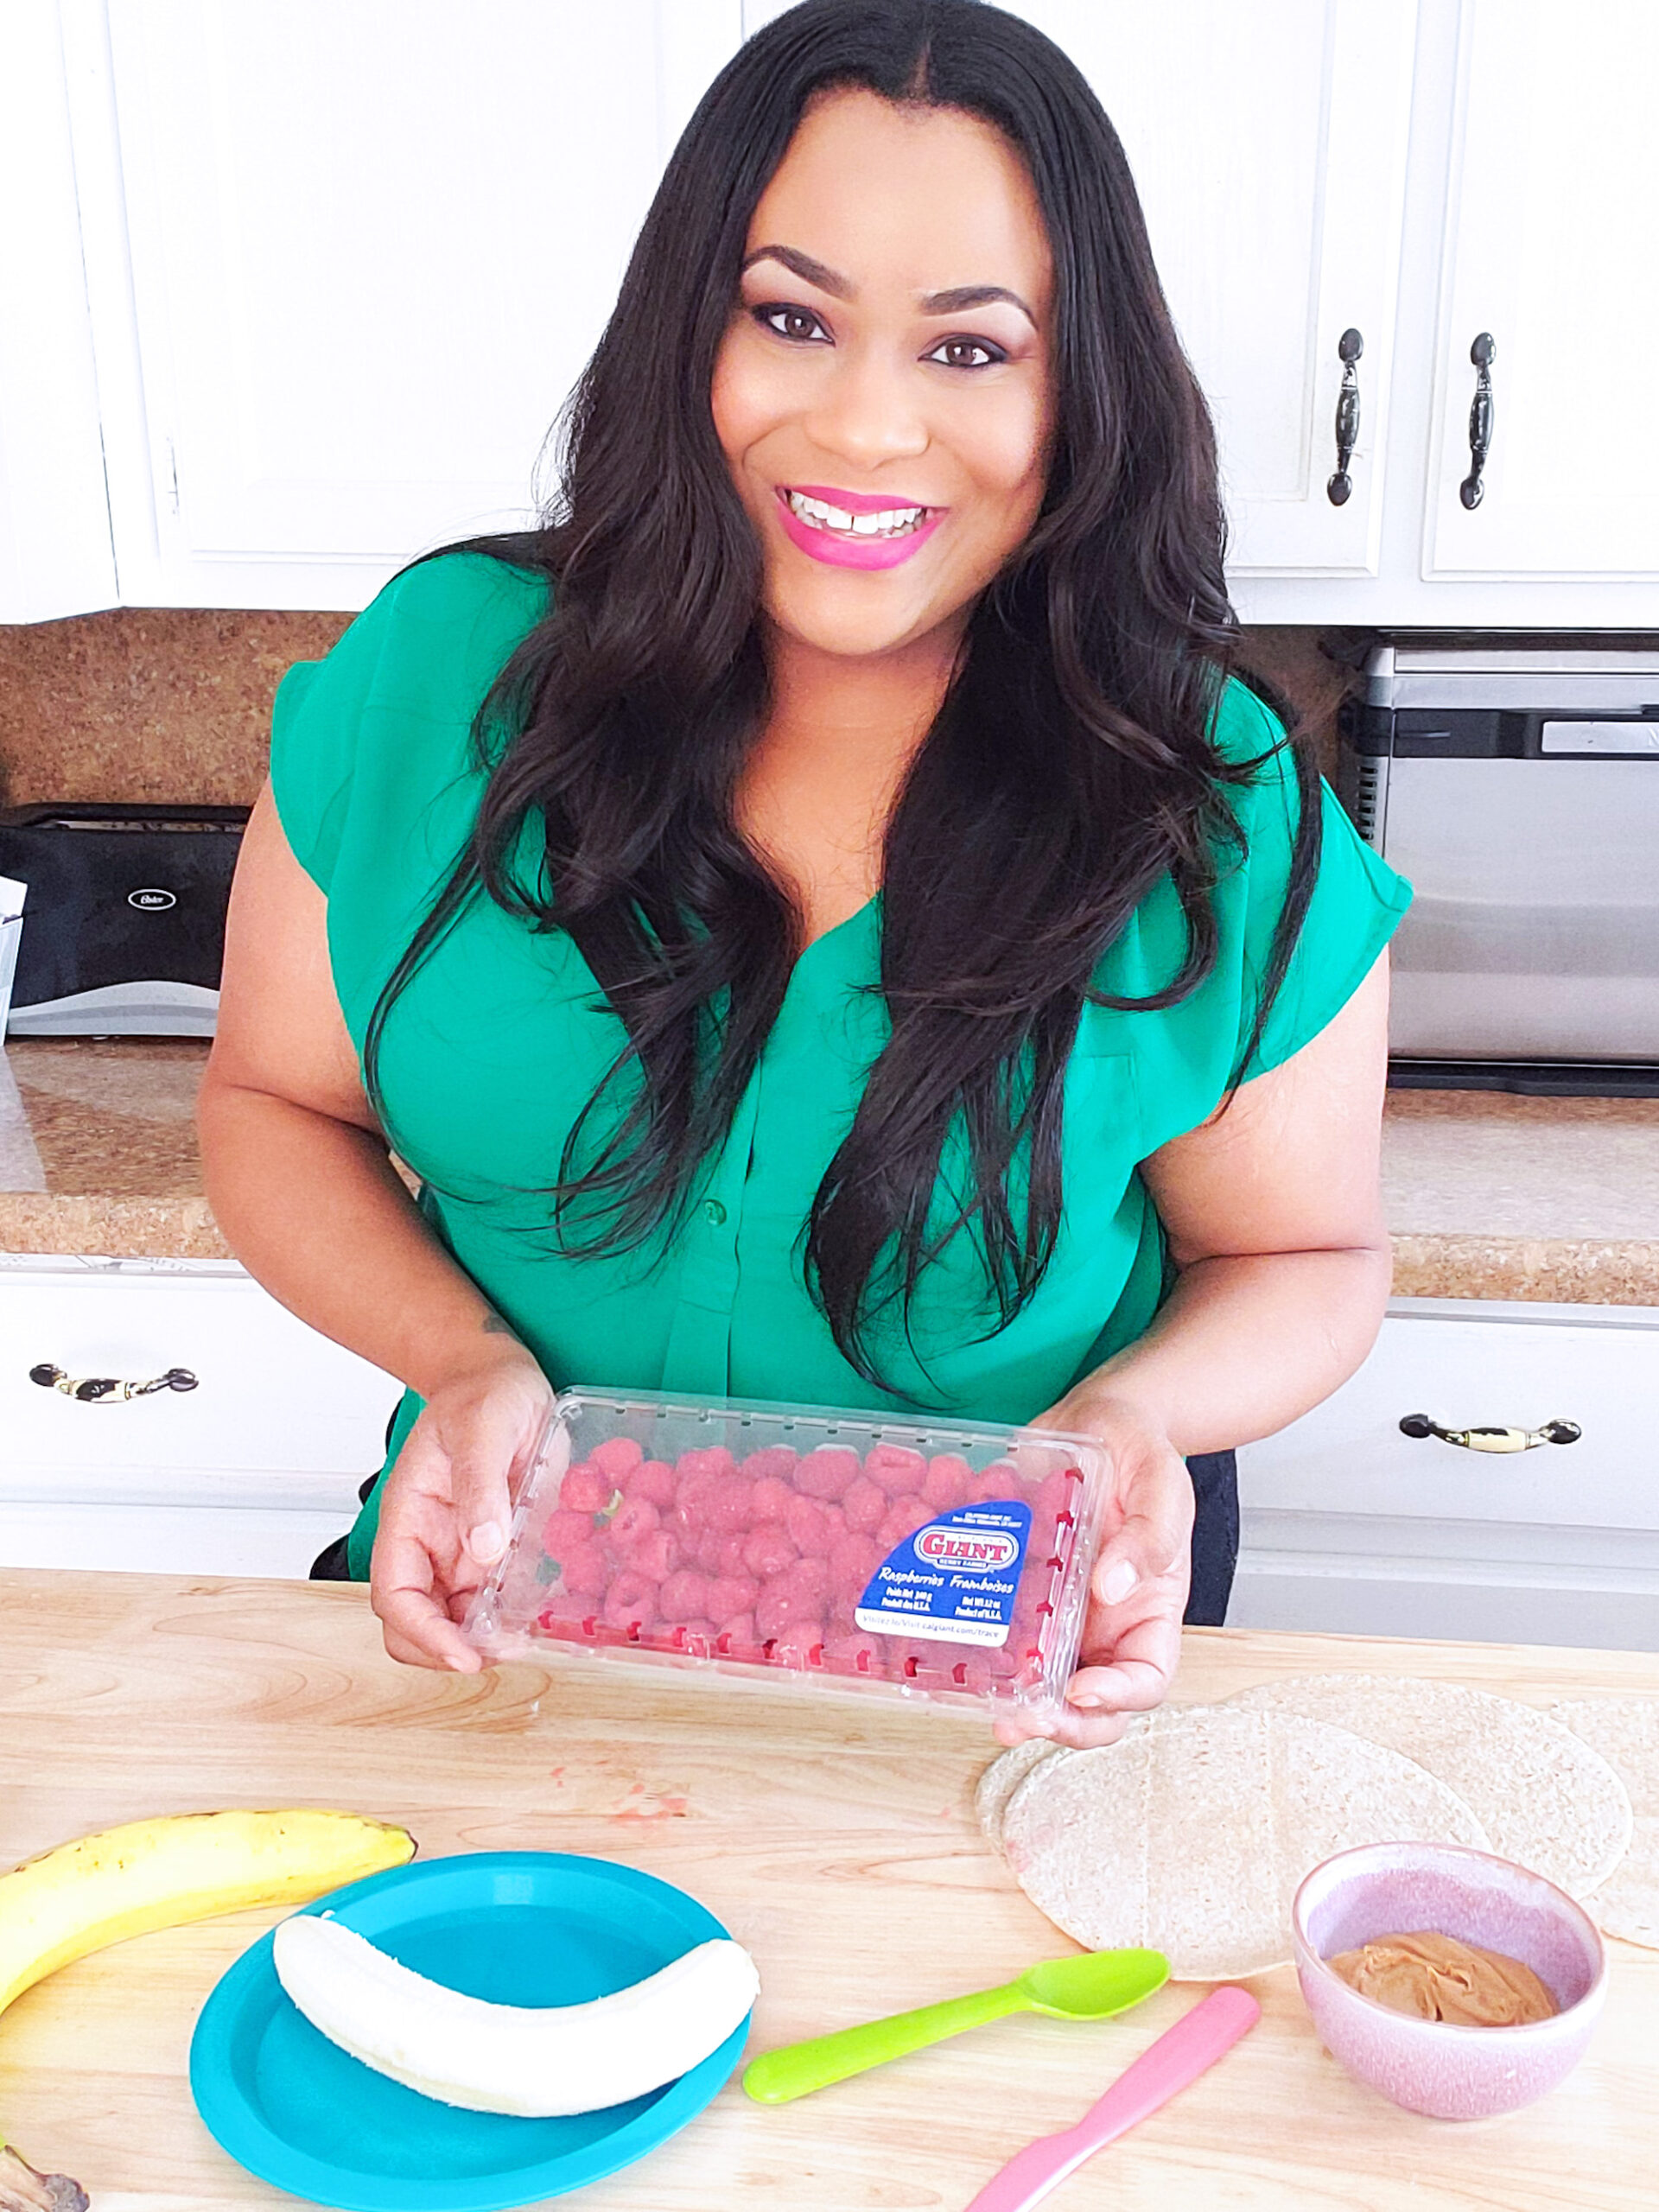 African American Registered Dietitian Nutritionist. Try this delicious, stacked Raspberry, Banana, & Peanut Butter Quesadilla instead! It's the perfect after-school snack or lunch. beautifuleatsandthings.com